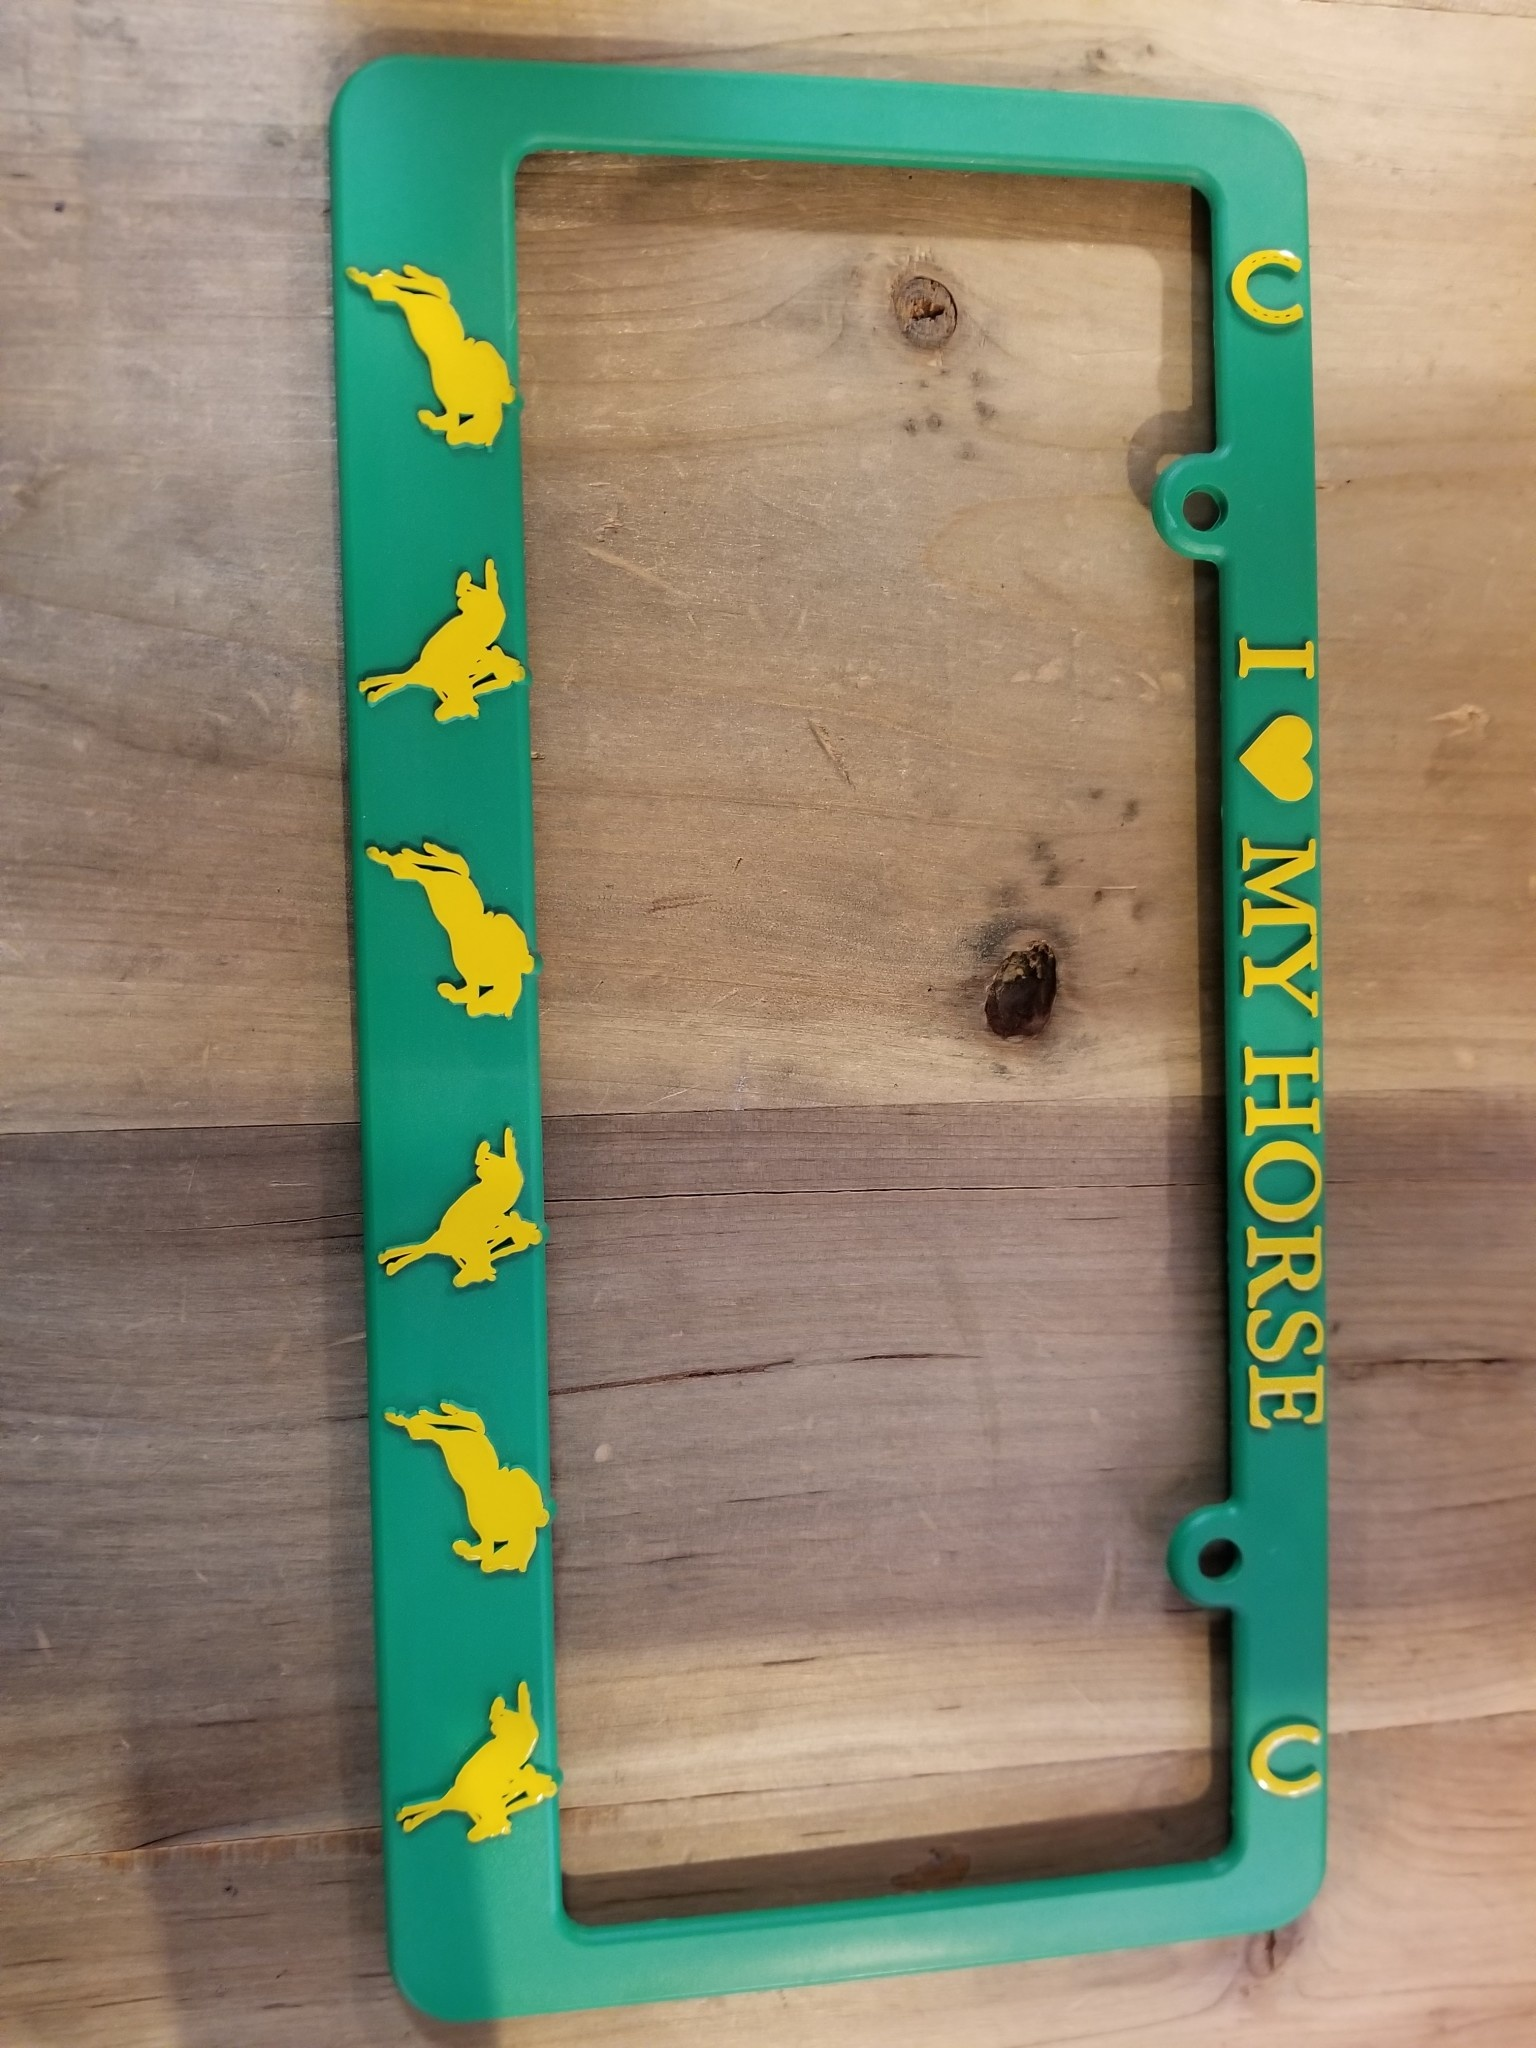 I Love My Horse Plate Frame Grn/Yellow Jumper Horses (Reg $12.95 now $8 OFF!)